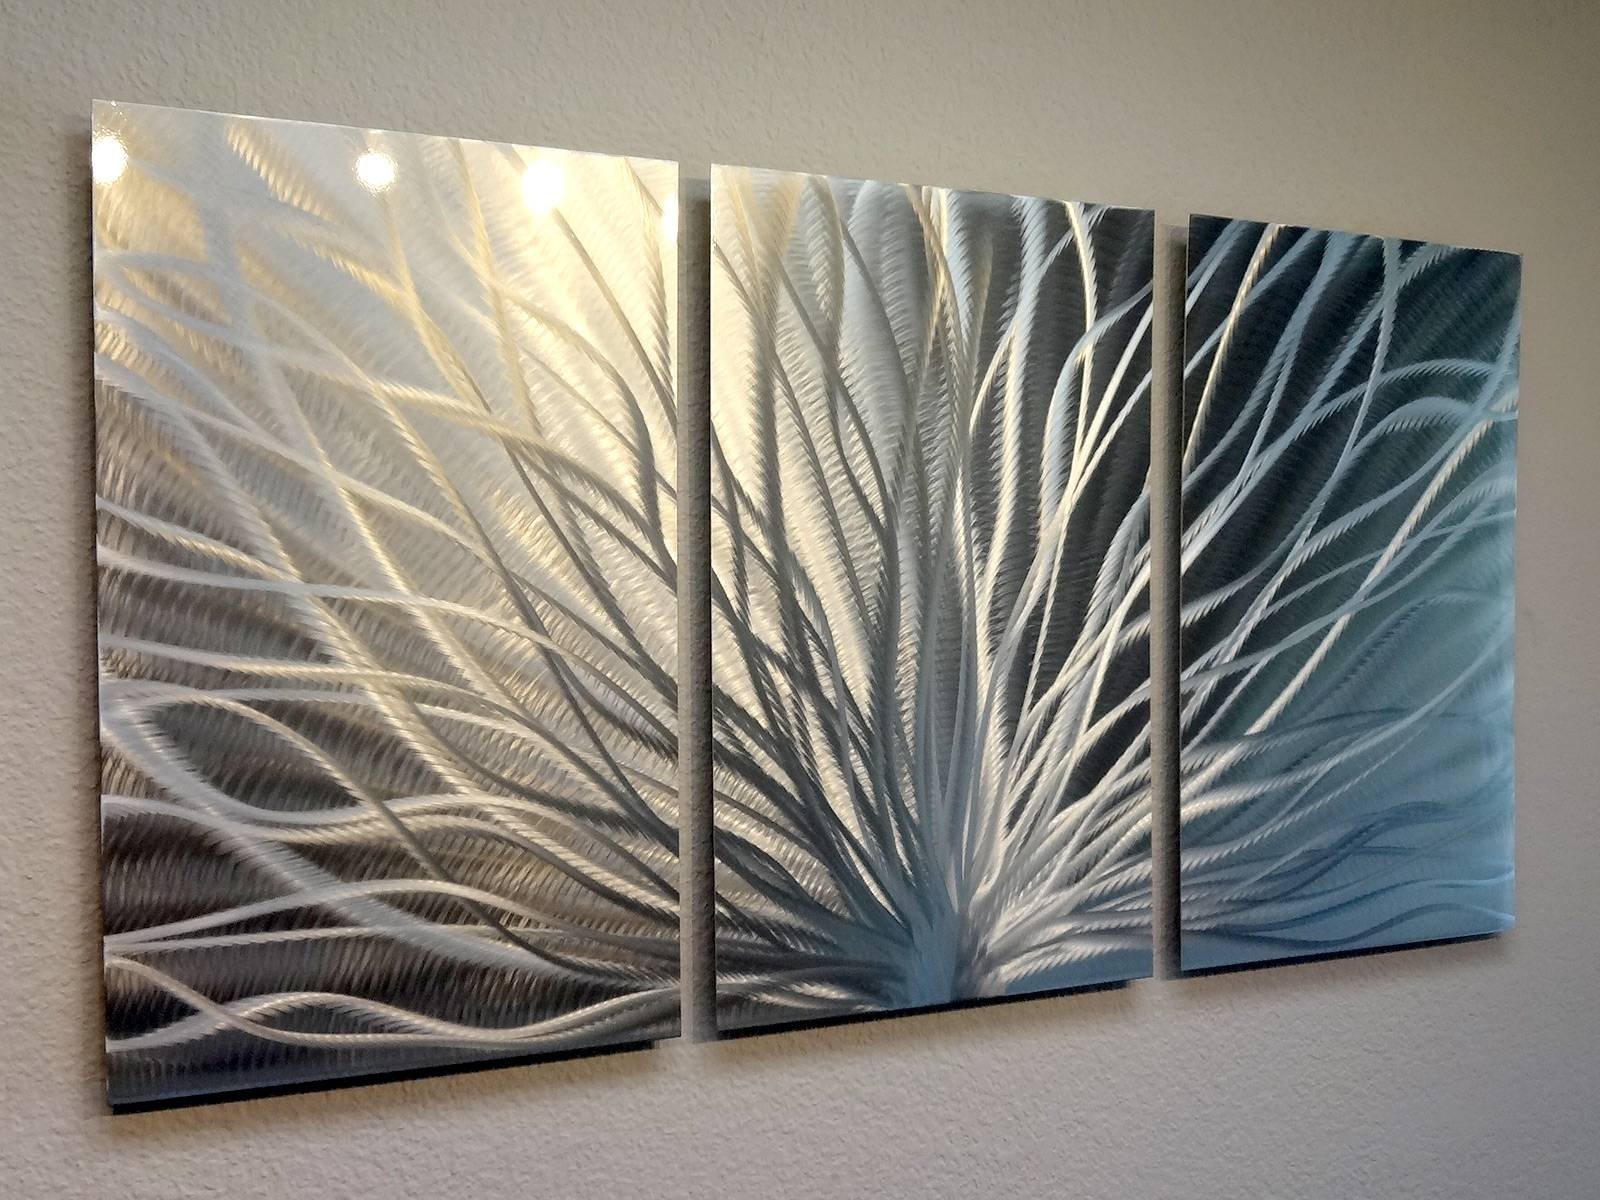 Radiance – 3 Panel Metal Wall Art Abstract Contemporary Modern With Regard To Most Recently Released Three Panel Wall Art (View 15 of 20)